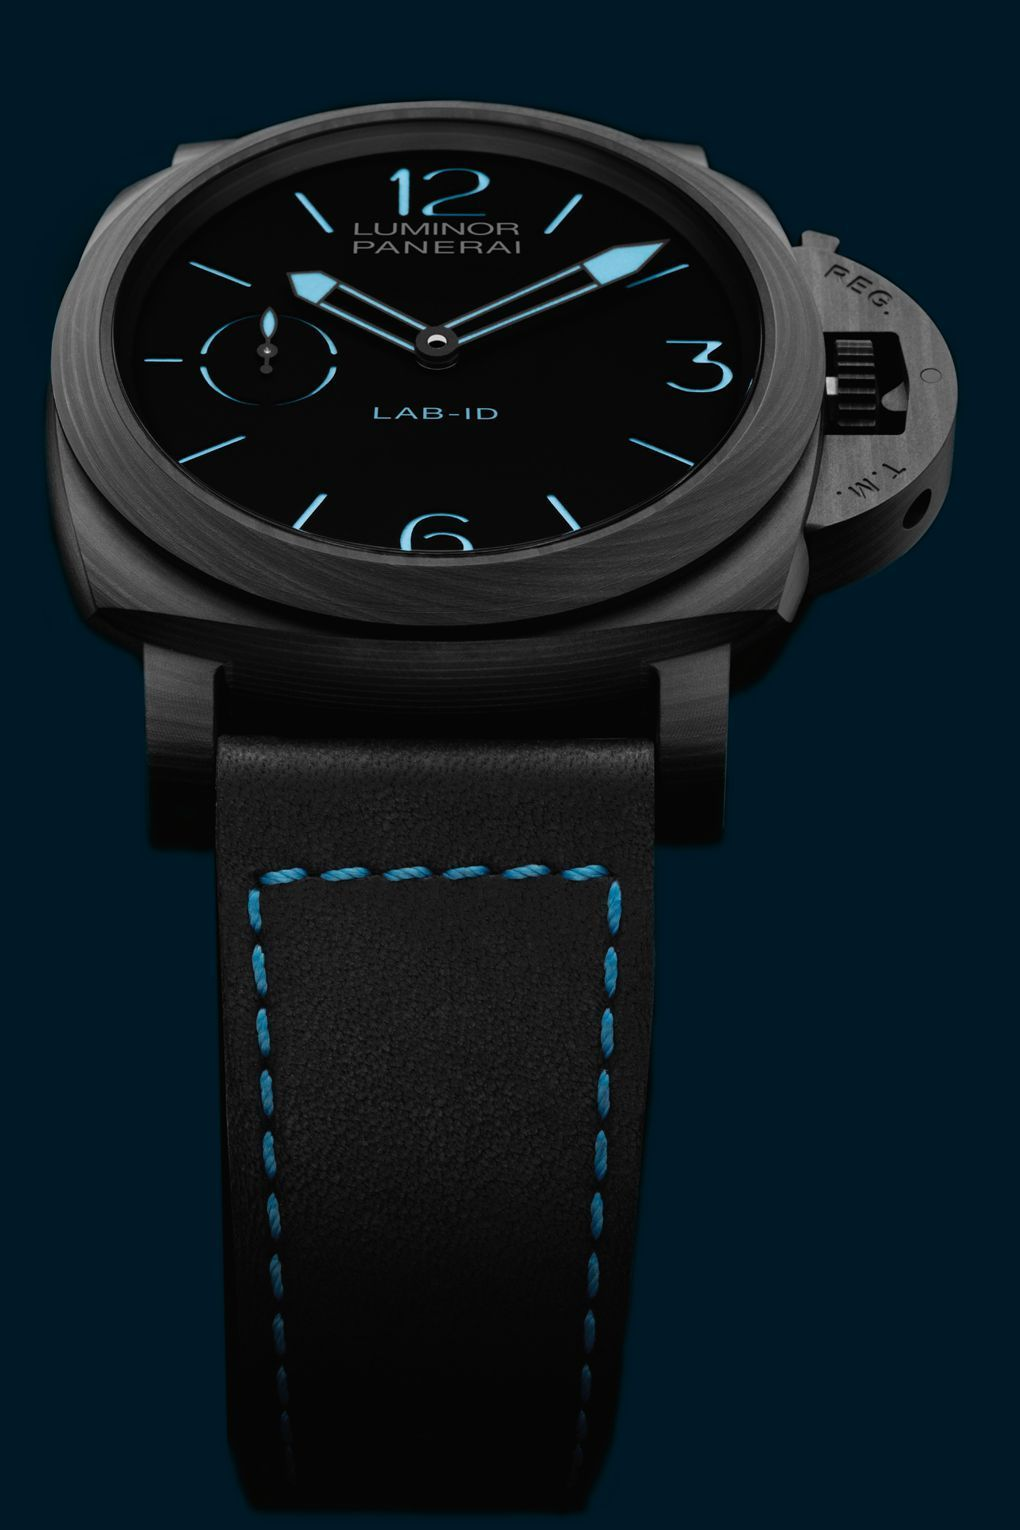 Communication on this topic: The Top Men's Watches Trends For 2019, the-top-mens-watches-trends-for-2019/